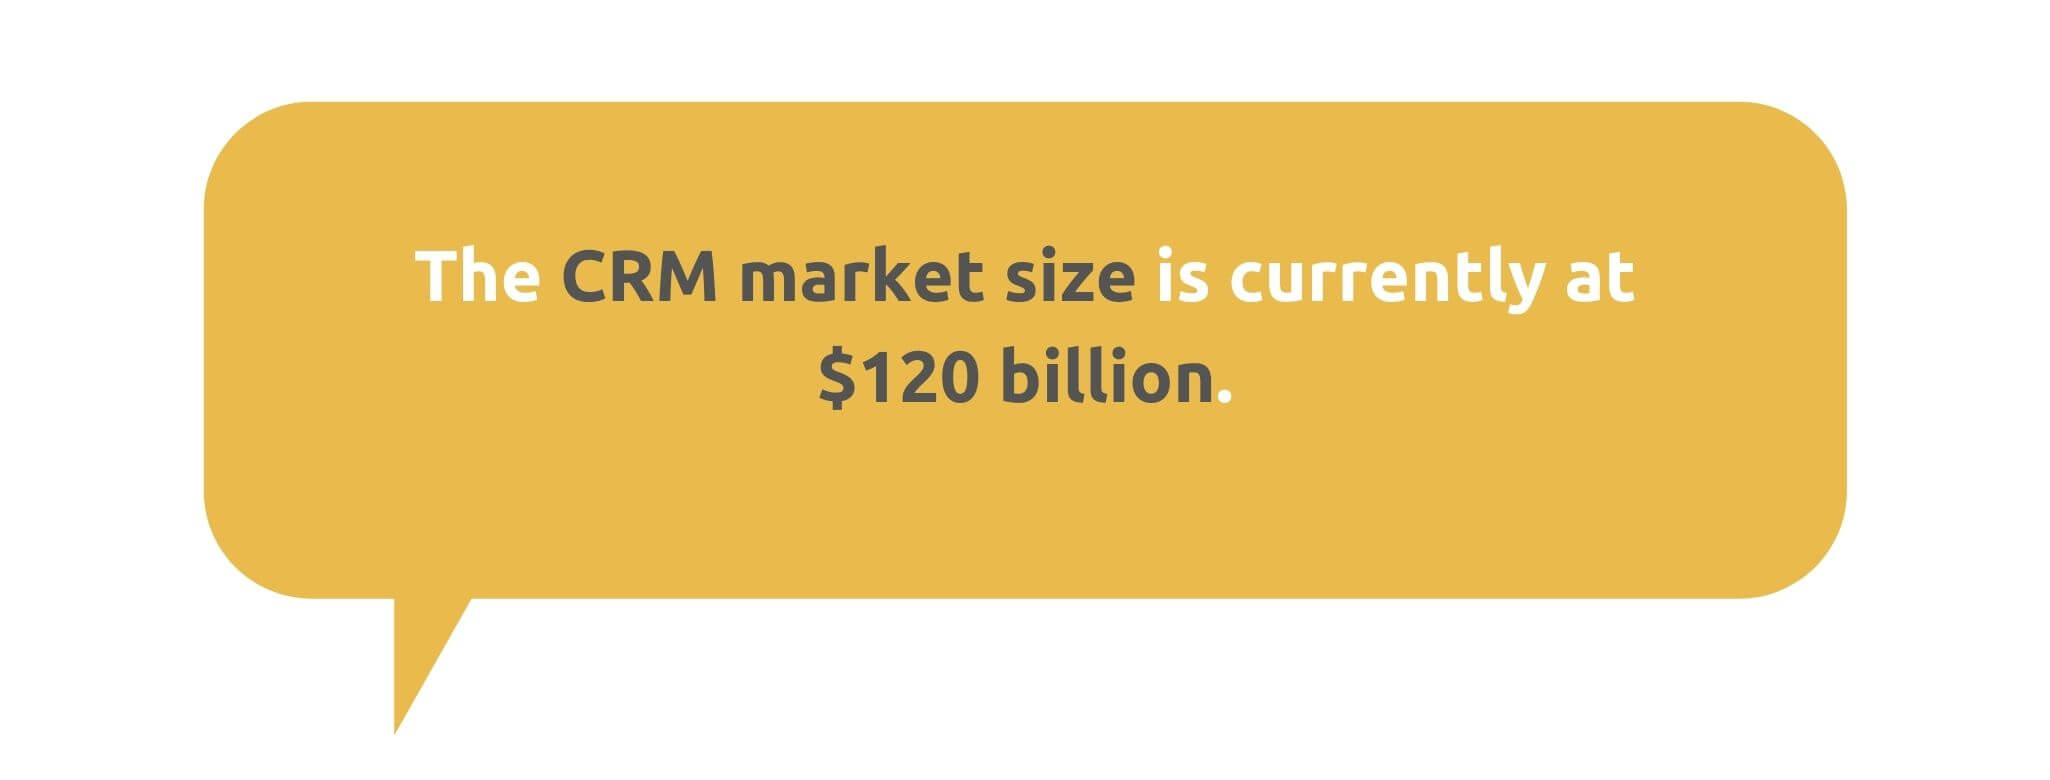 CRM Marketing Size Is $120 Billion - 50+ CRM Stats - Replyco Helpdesk Software for eCommerce